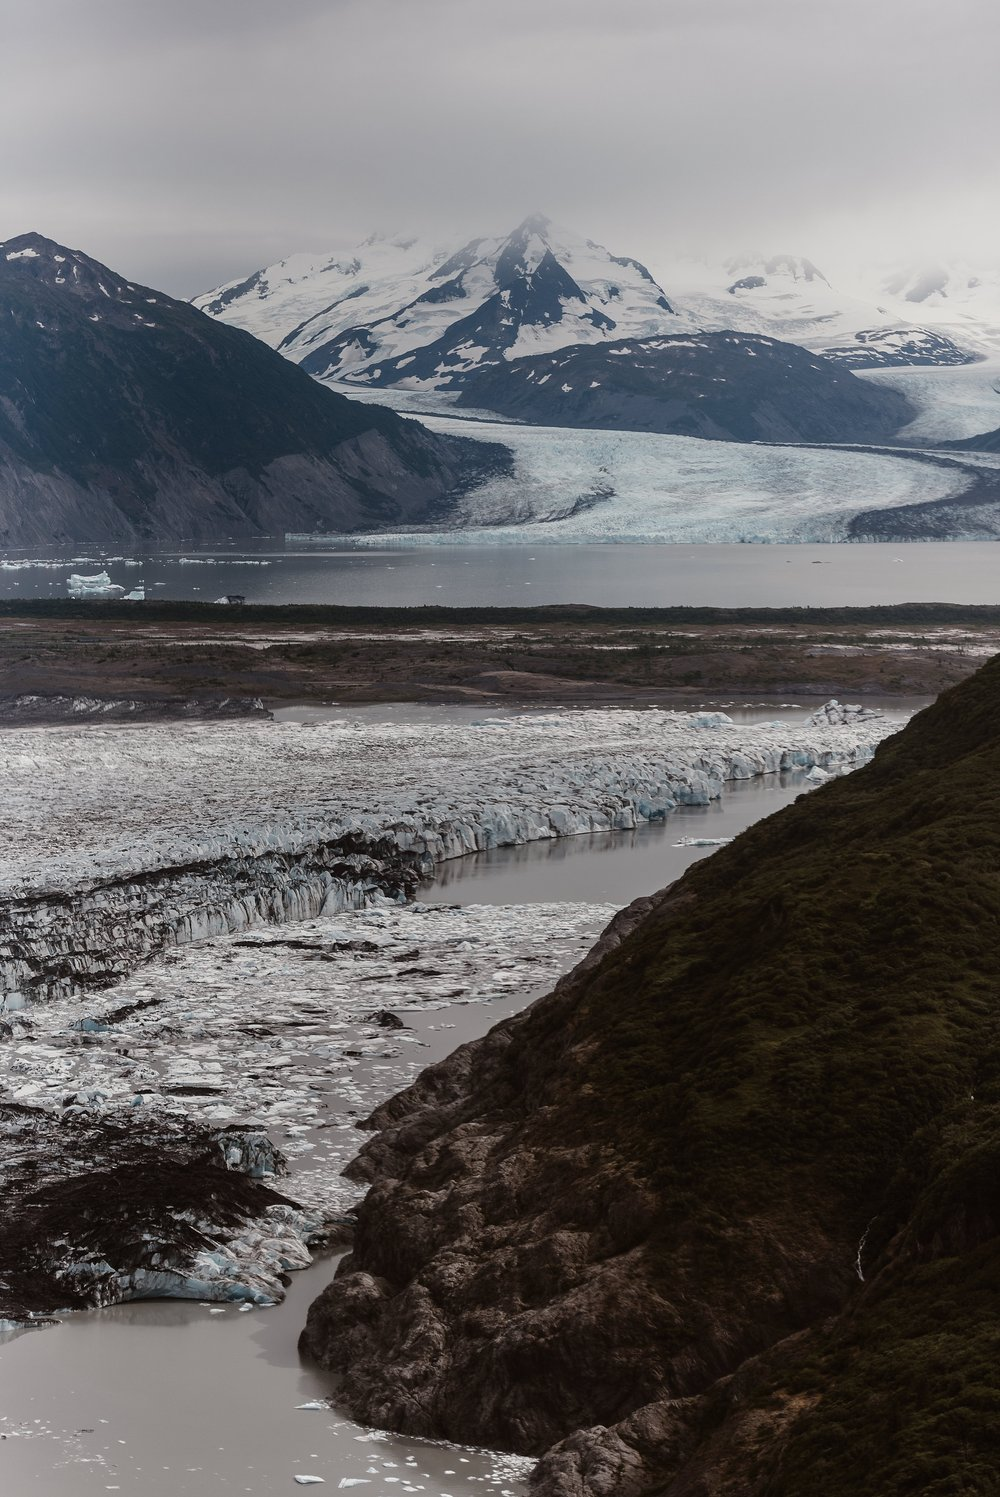 This image shows so much of the Alaska landscape — glaciated mountain peaks, a glacial lake, and snowy mountains the distance. These elopement photos were captured by elopement photographer Adventure Instead during Jordyn and Connor's Alaska Elopement Story.